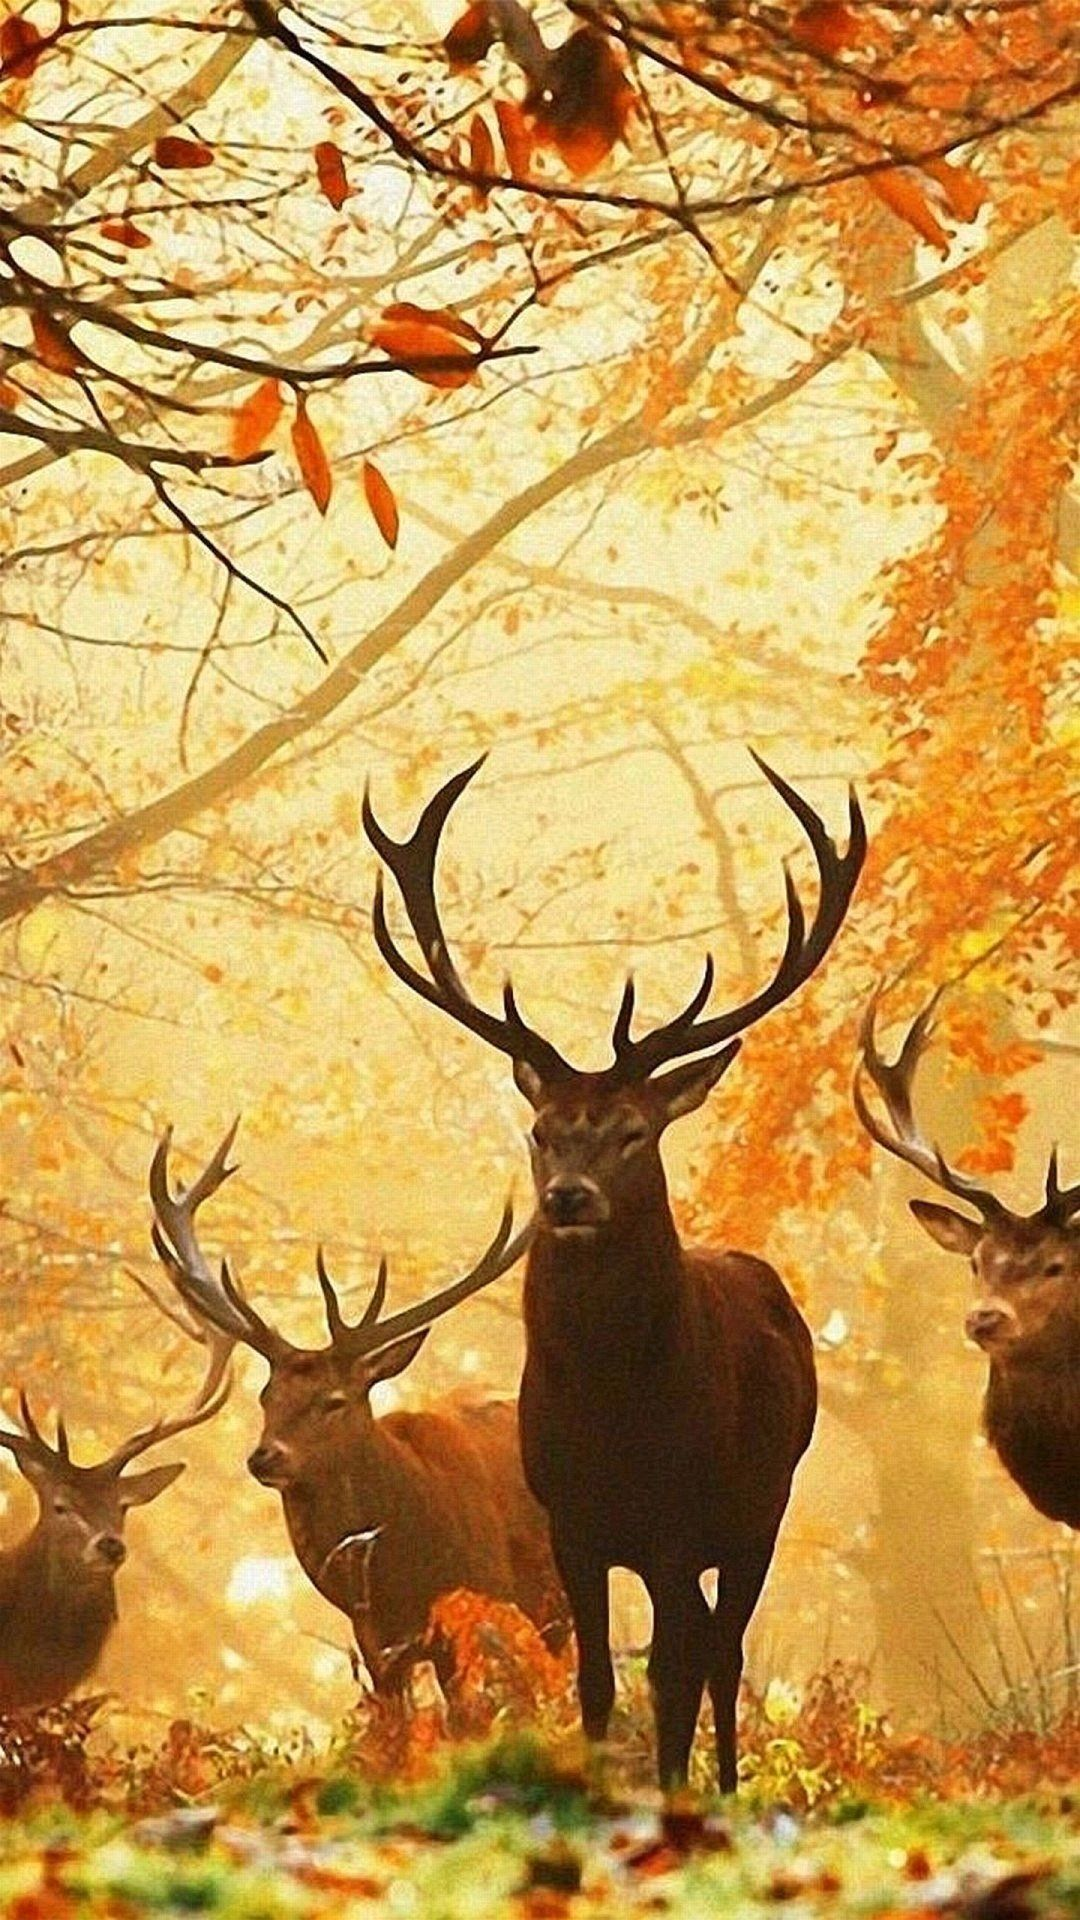 Hunting iPhone Wallpapers - Wallpaper Cave